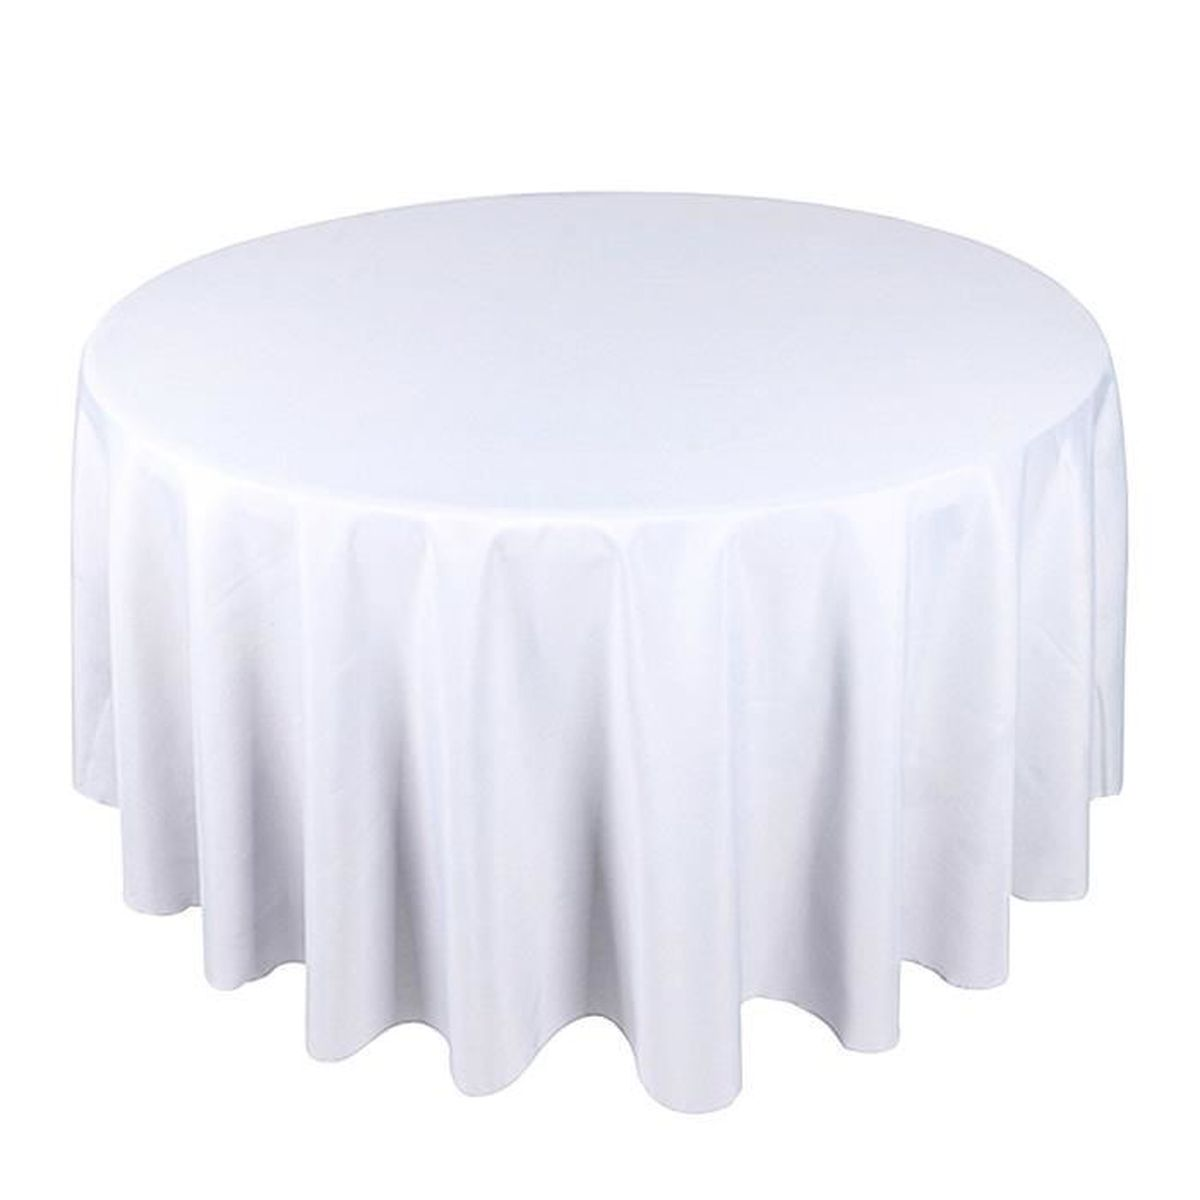 lot de 5 blanc tissu de table ronde 330cm mariage polyester nappe achat vente nappe de table. Black Bedroom Furniture Sets. Home Design Ideas